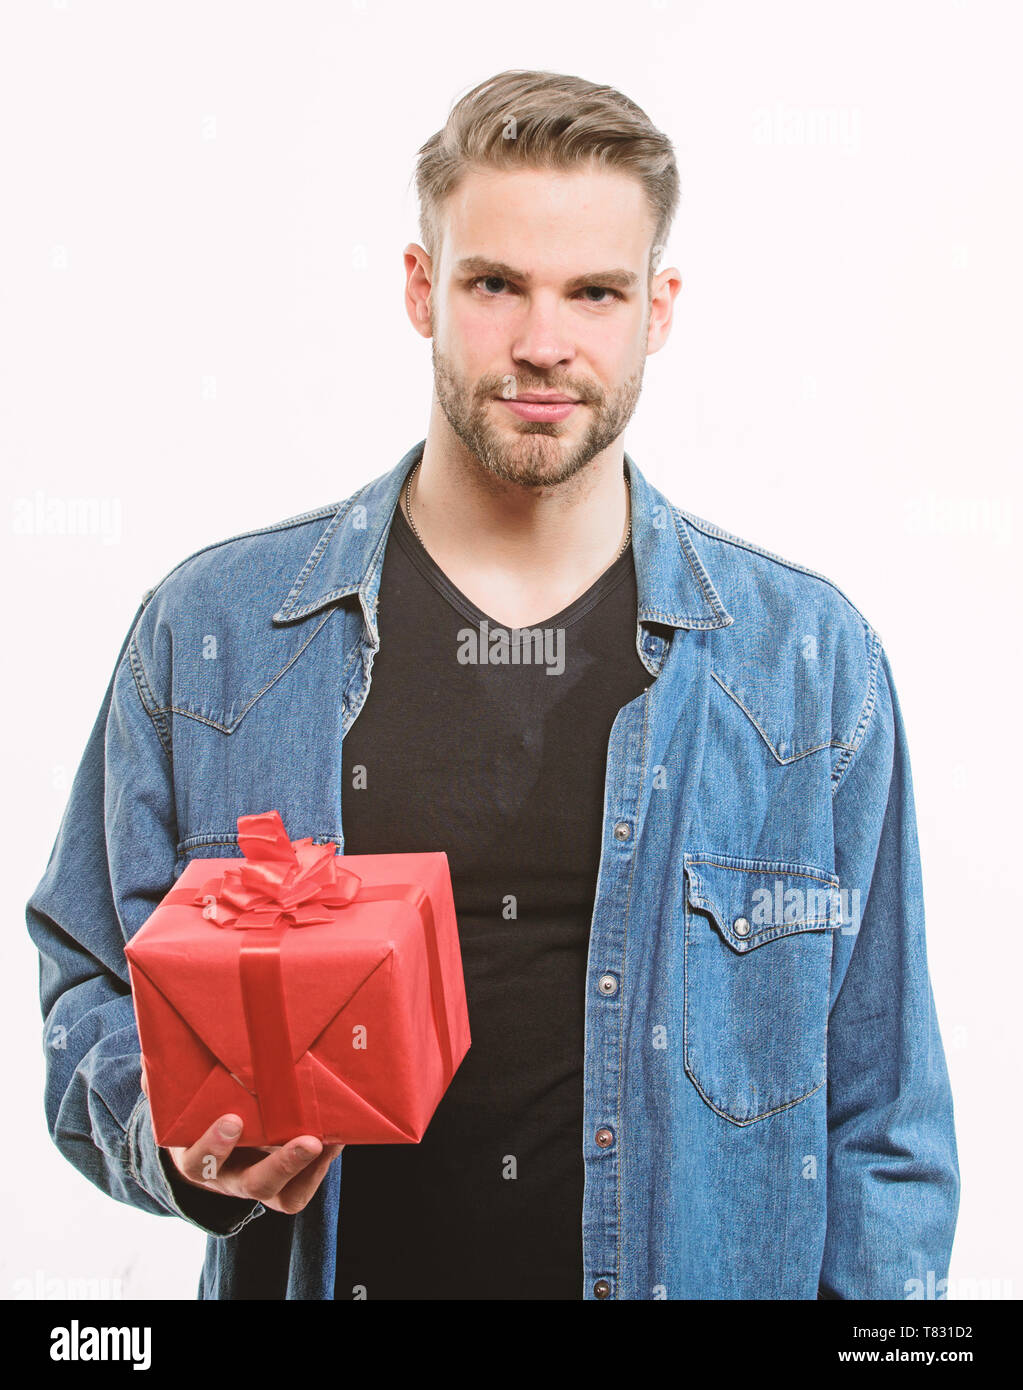 birthday gift for guy youre dating